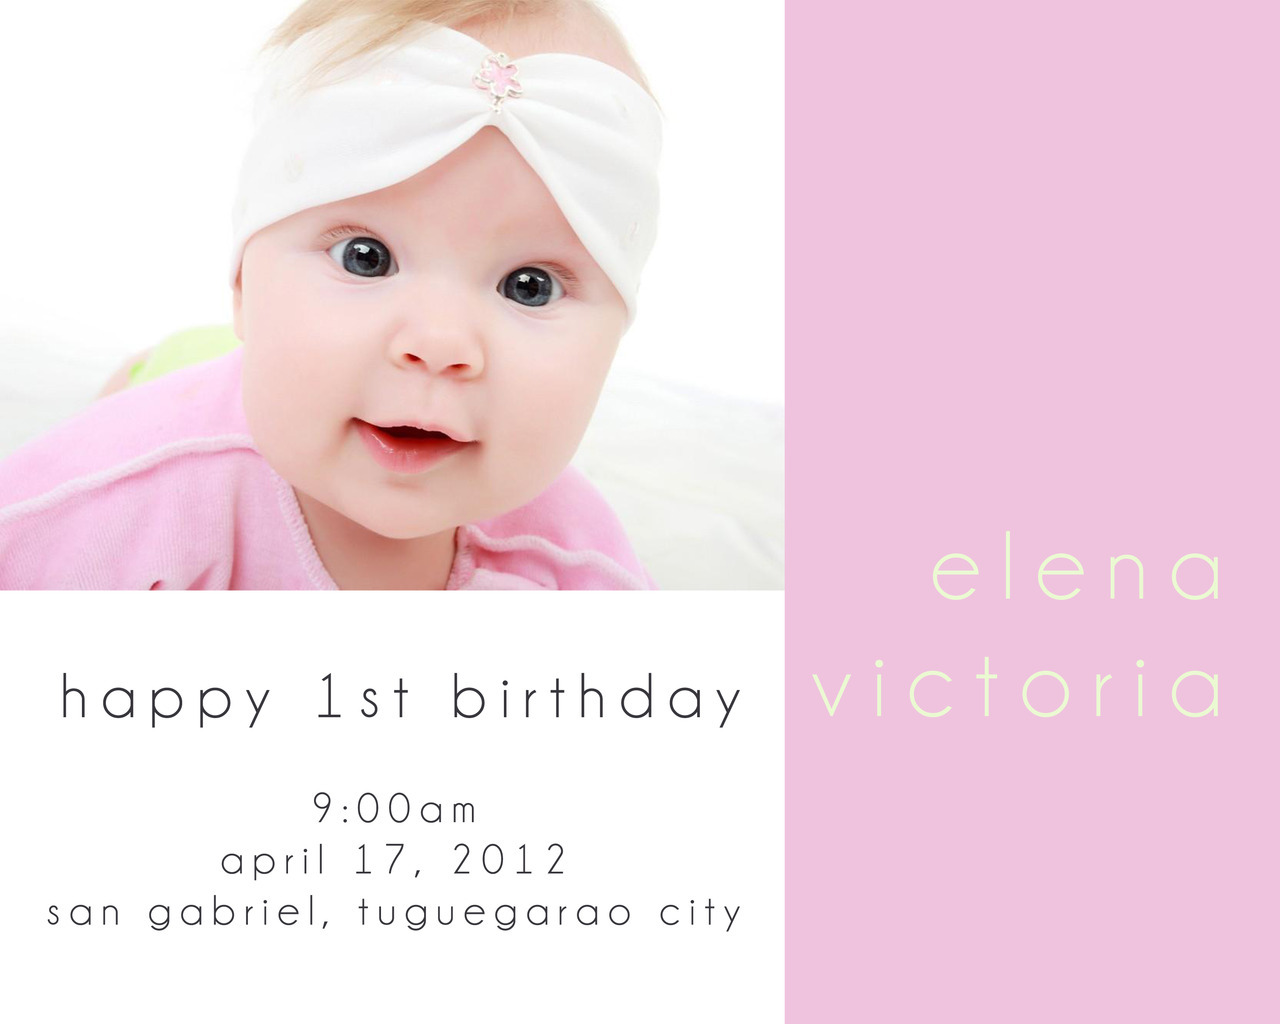 sample invitation #1